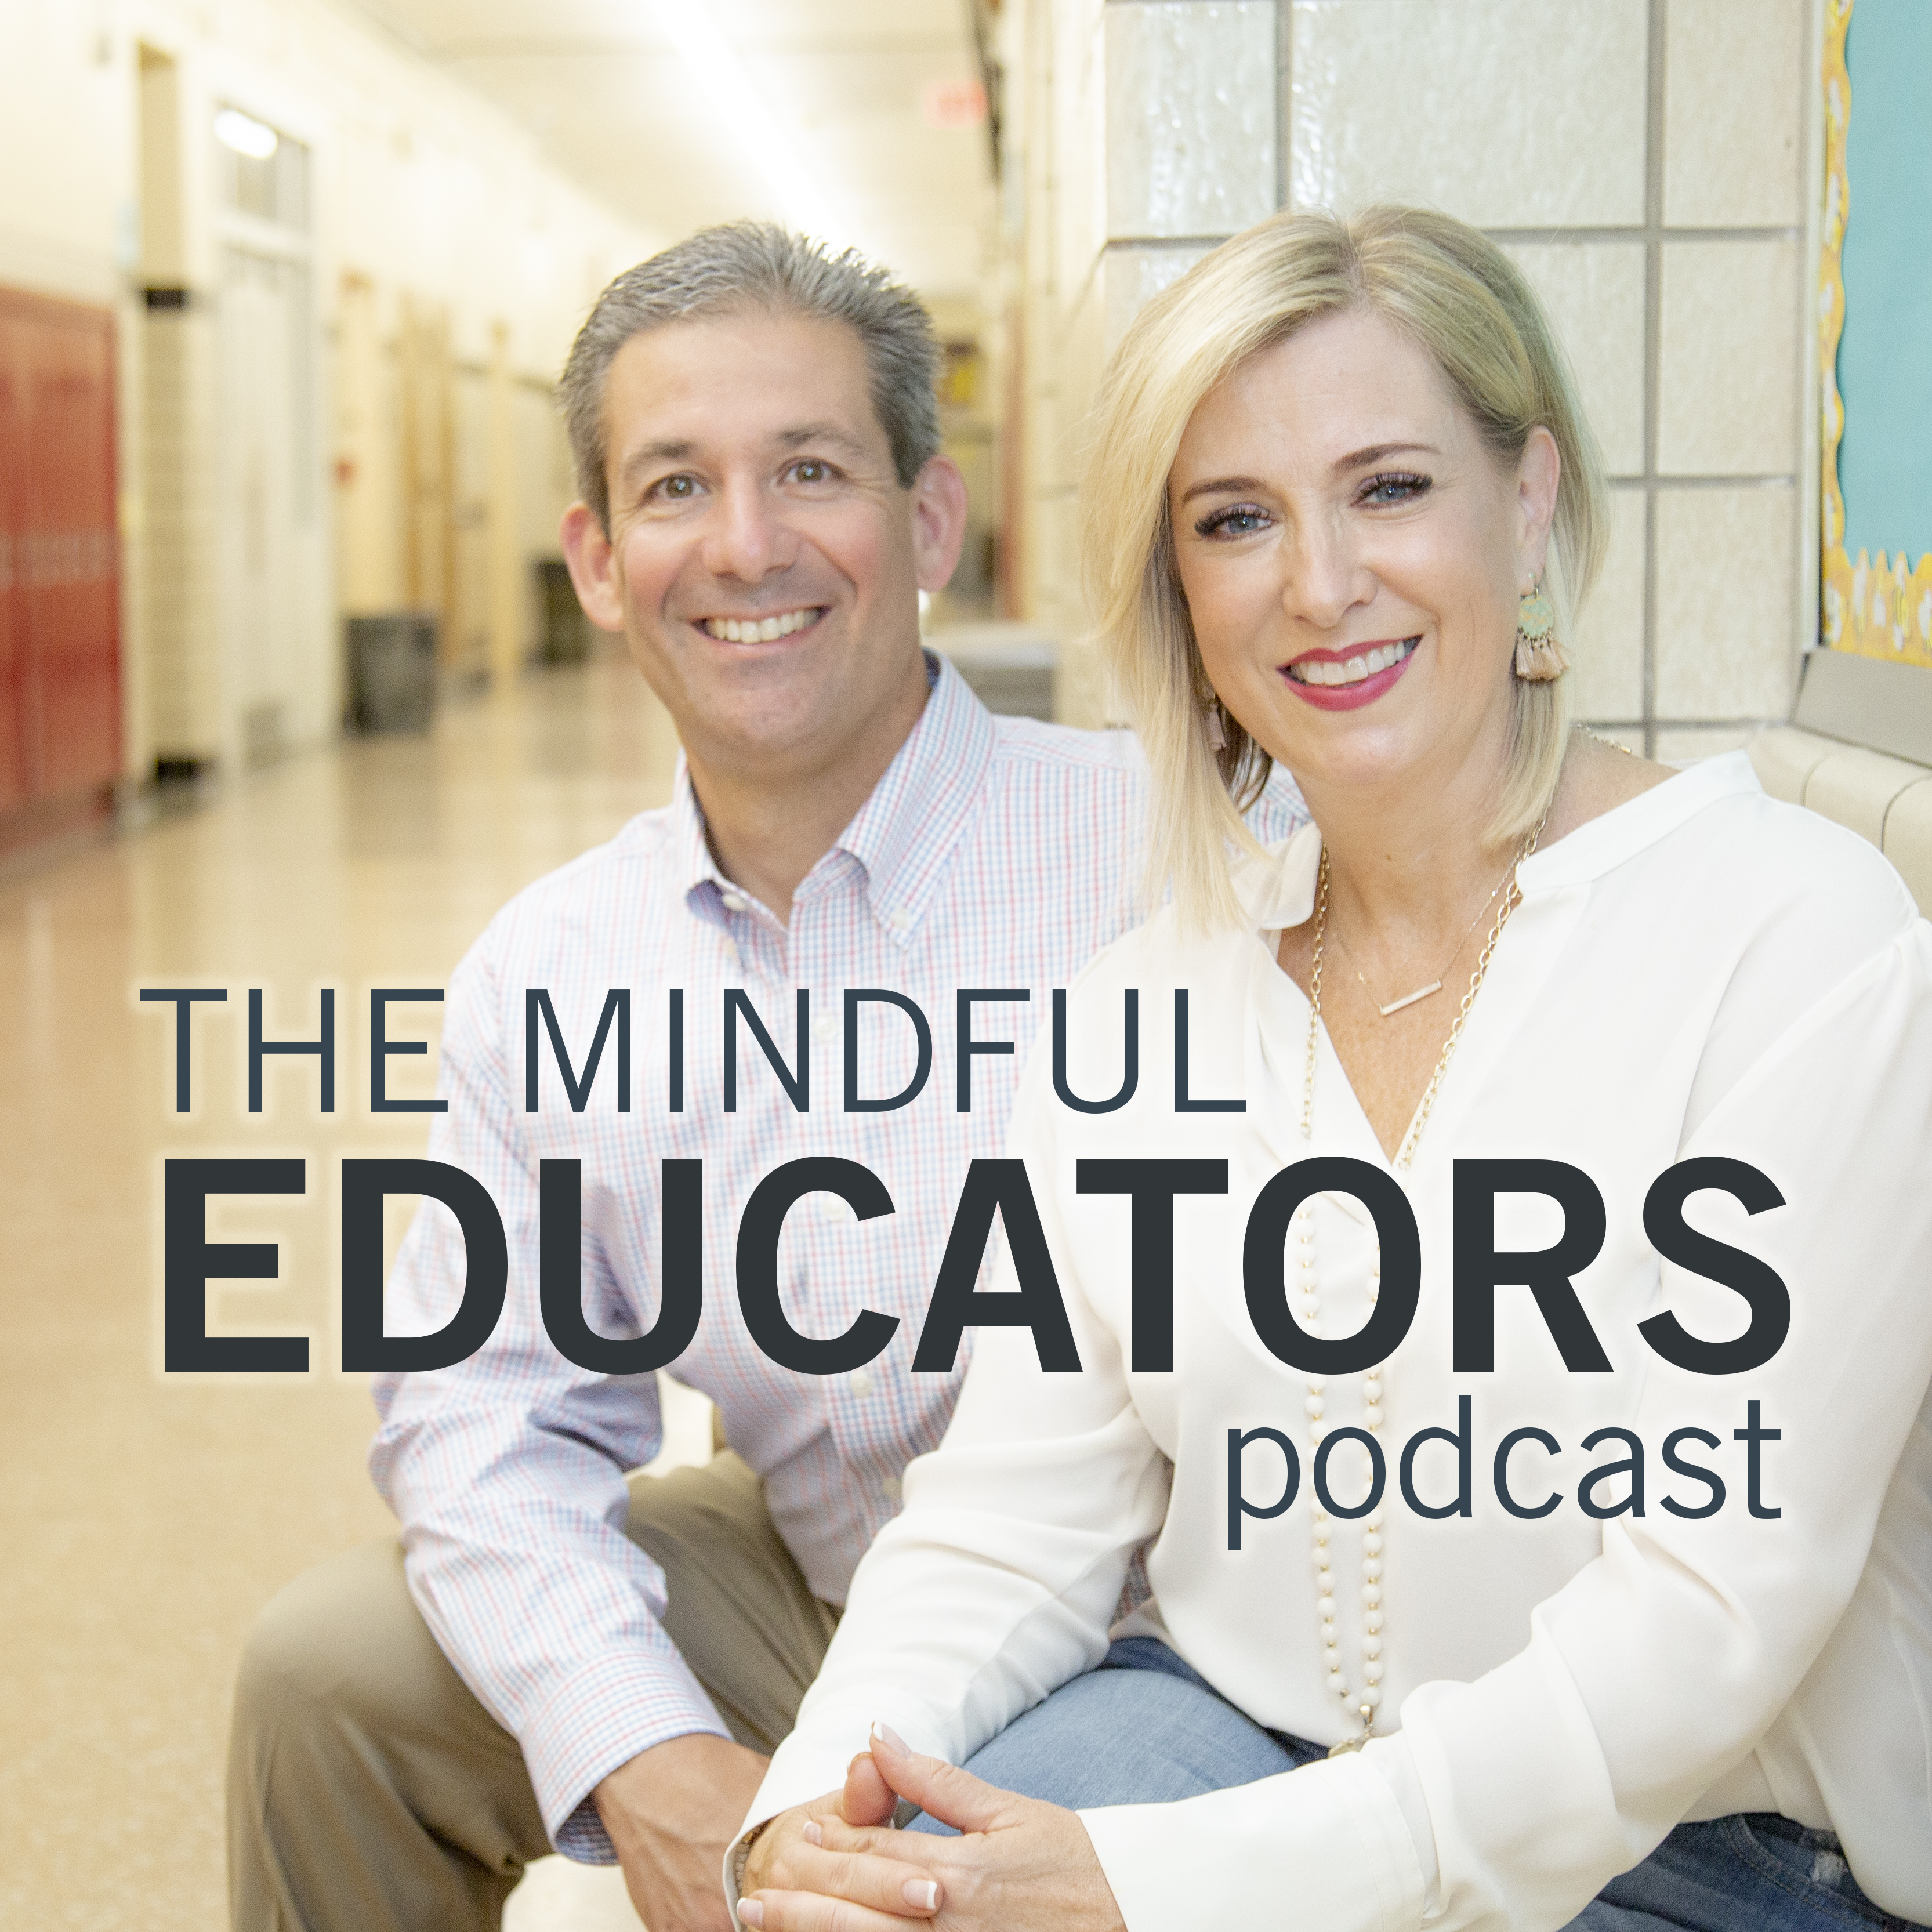 The Mindful Educators Podcast